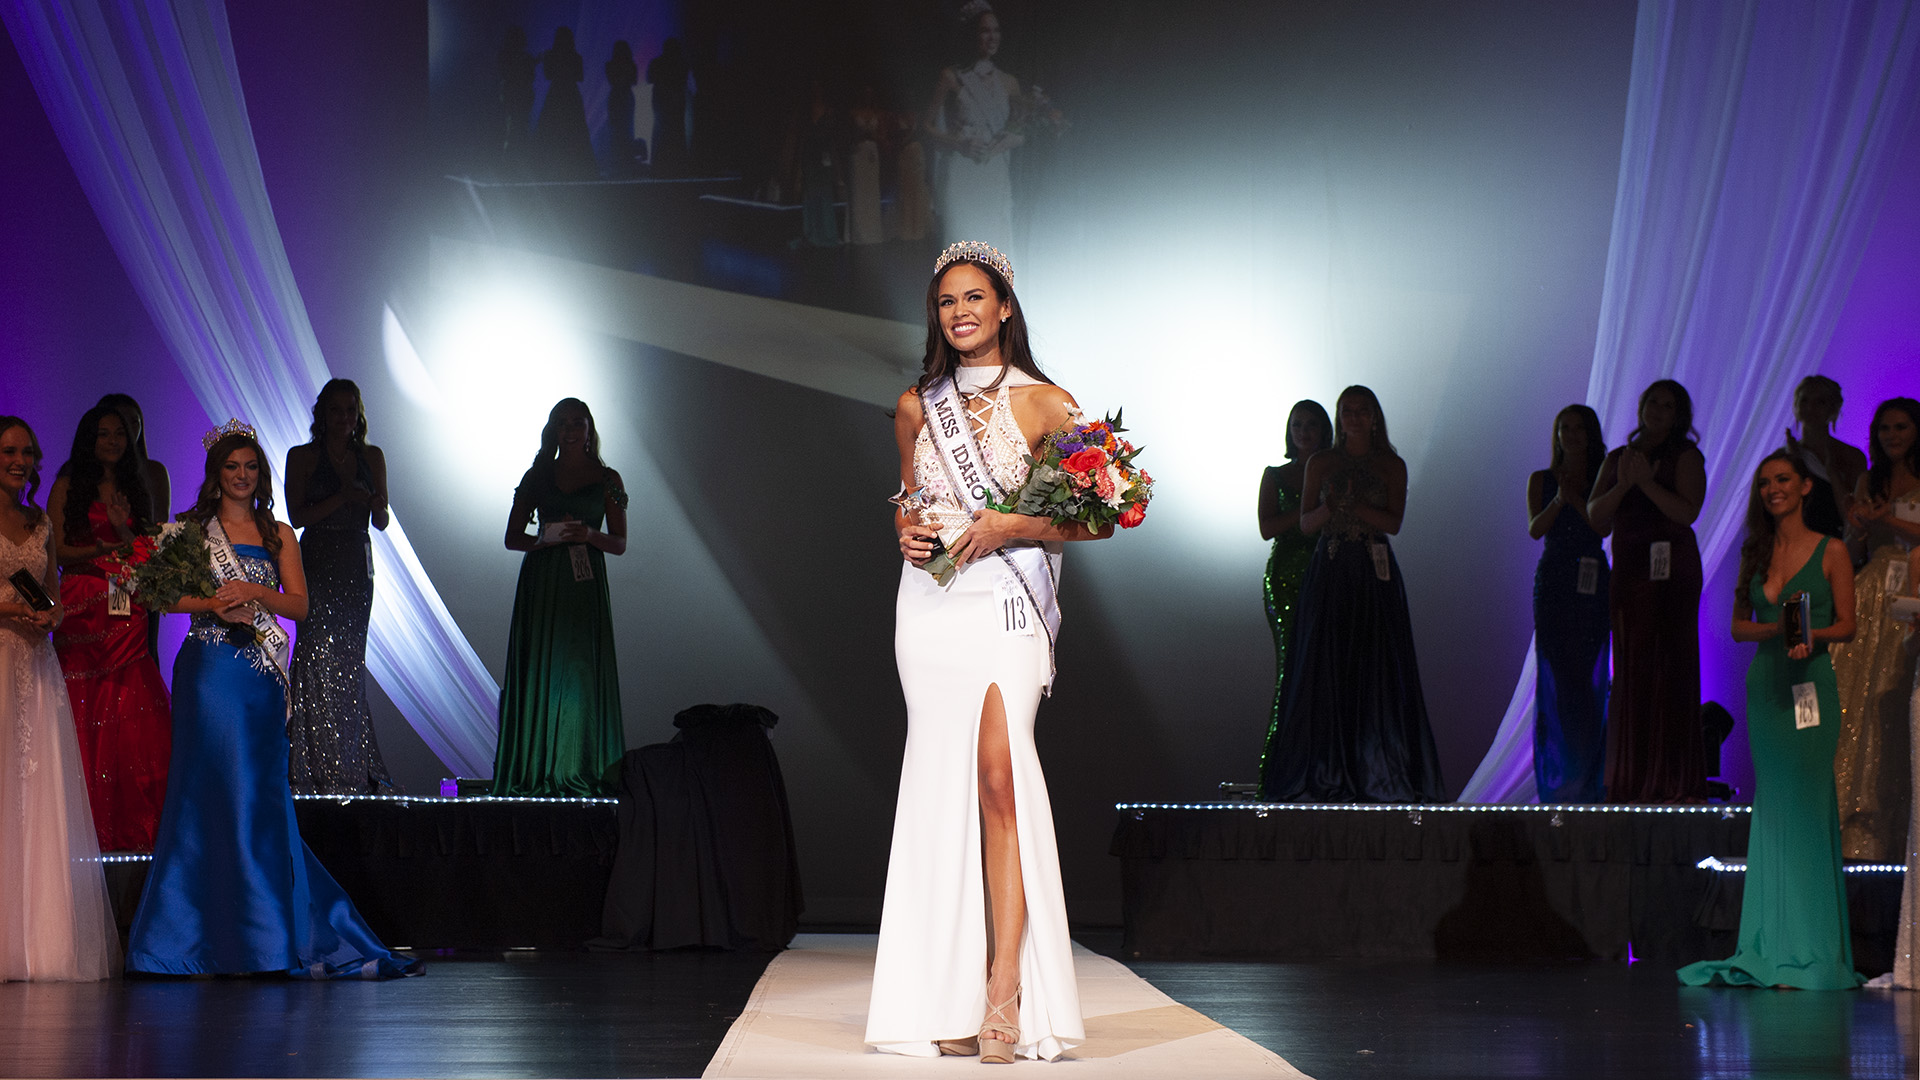 Veterinary student wins Miss Idaho pageant